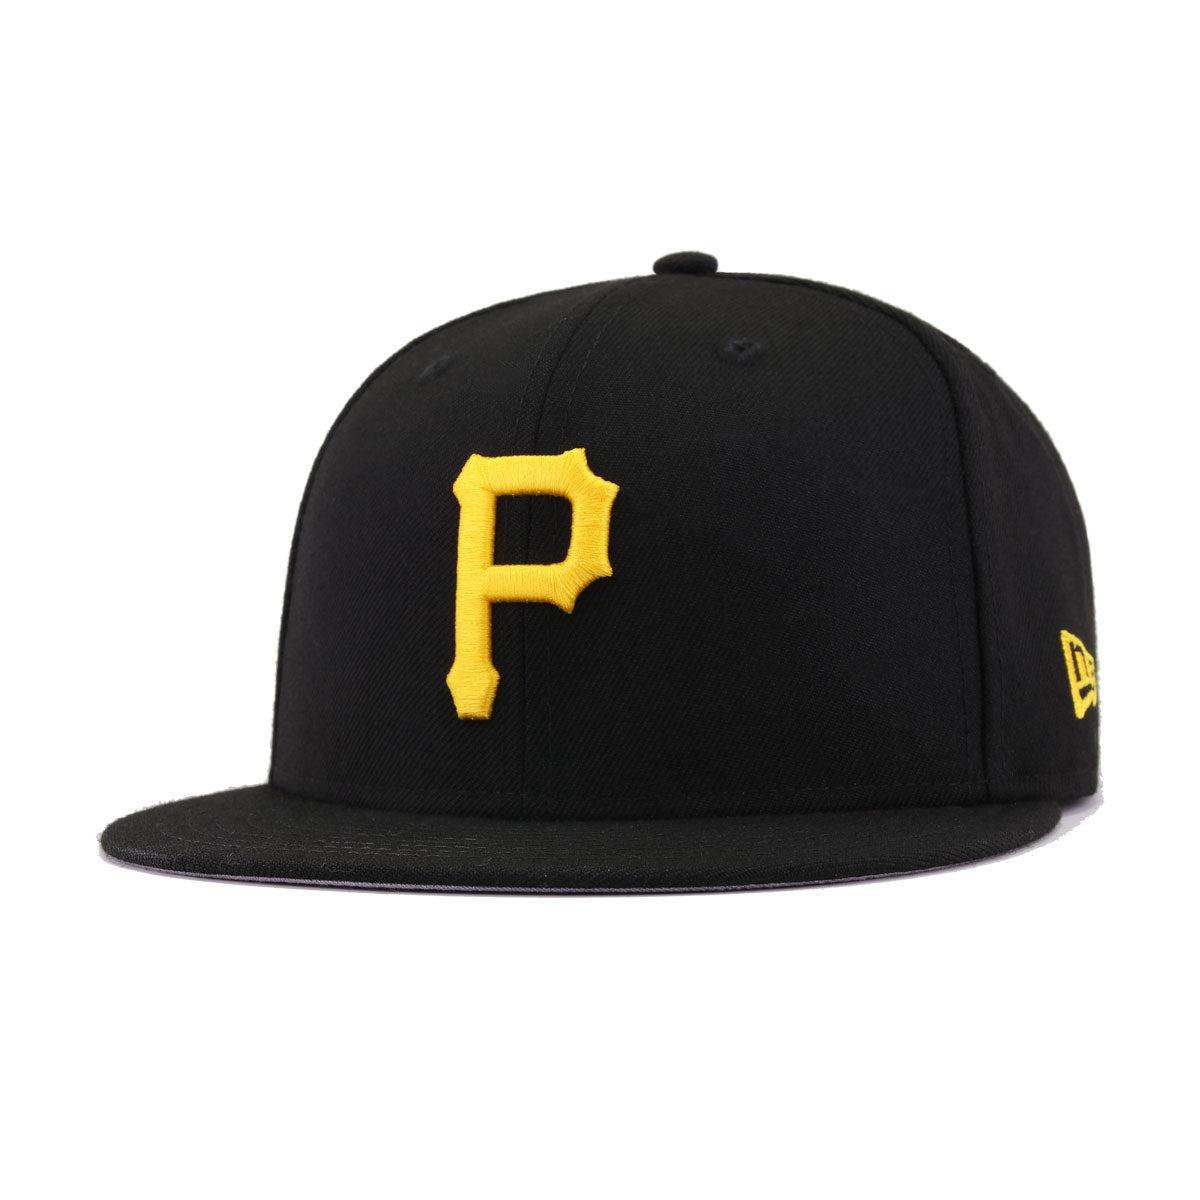 c8acad85ed28e7 Pittsburgh Pirates Black Manilla New Era 9Fifty Snapback